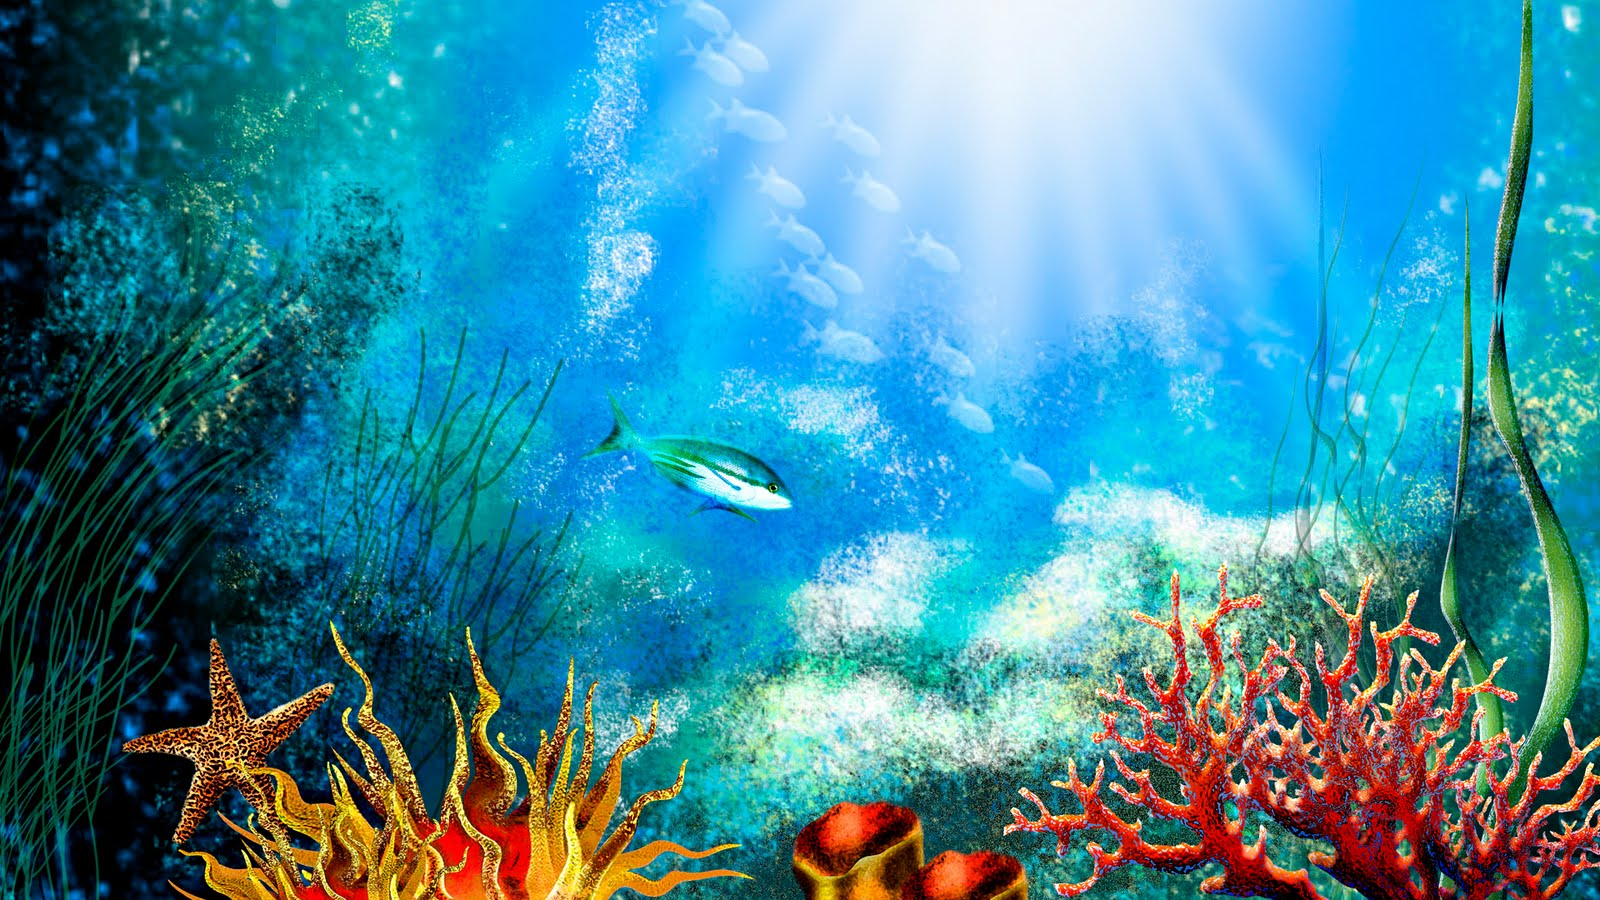 aquarium hd wallpaper - photo #7